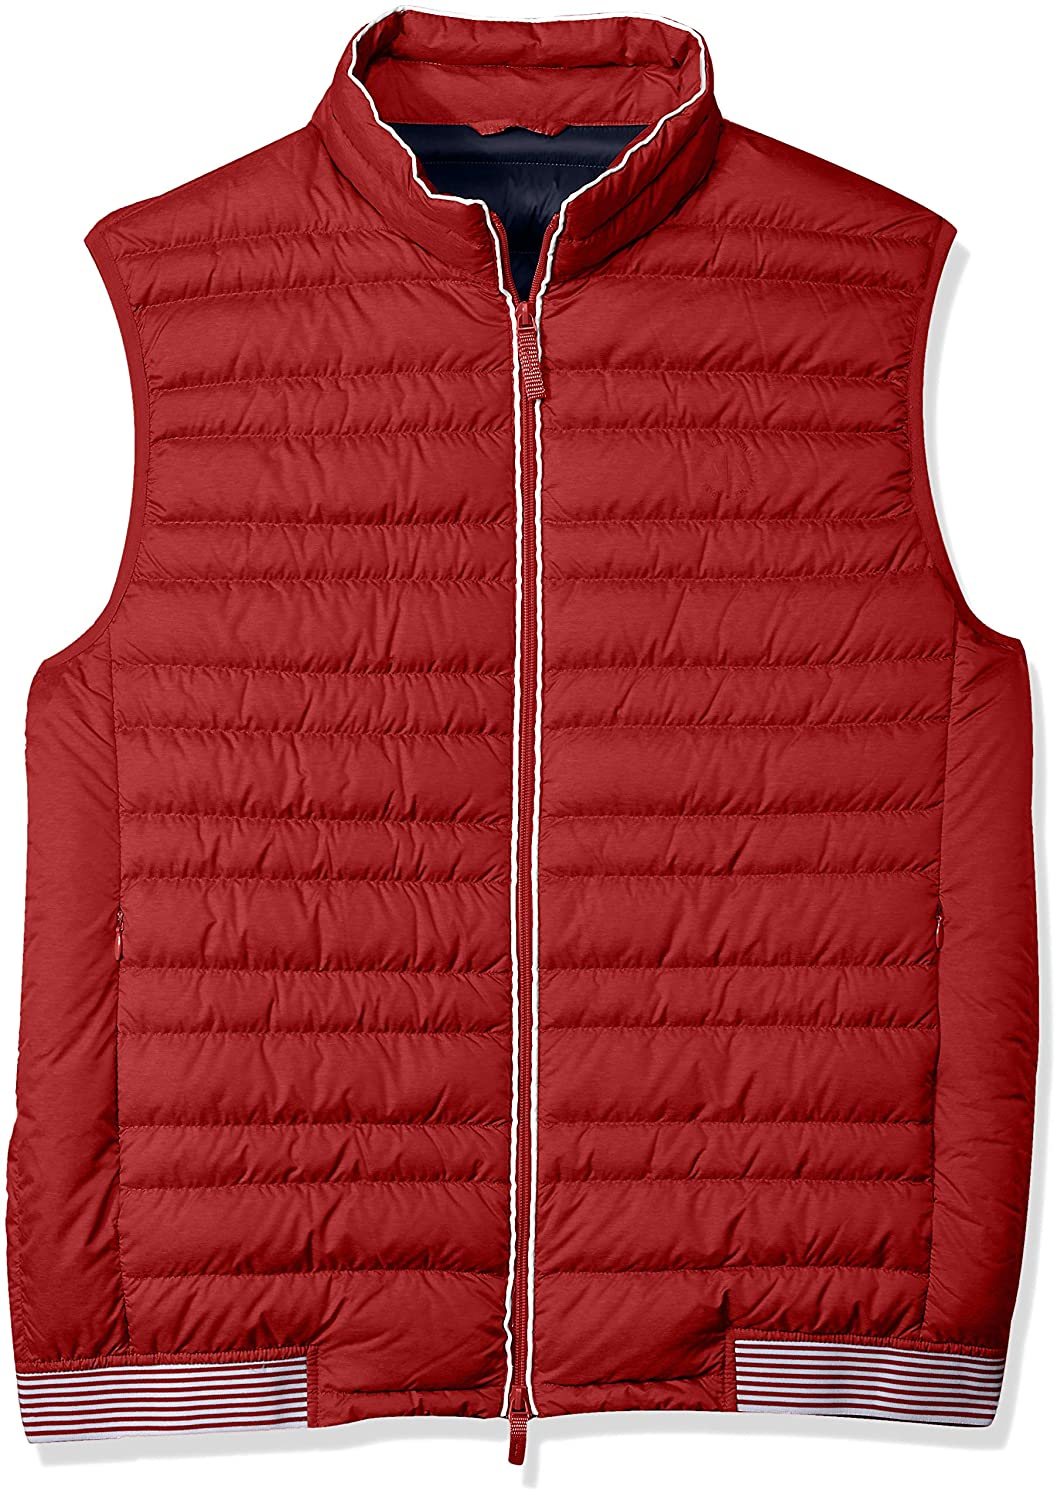 A|X Armani Exchange Men's Down Vest RED/Navy XX-Large 8NZQ41ZNW3Z